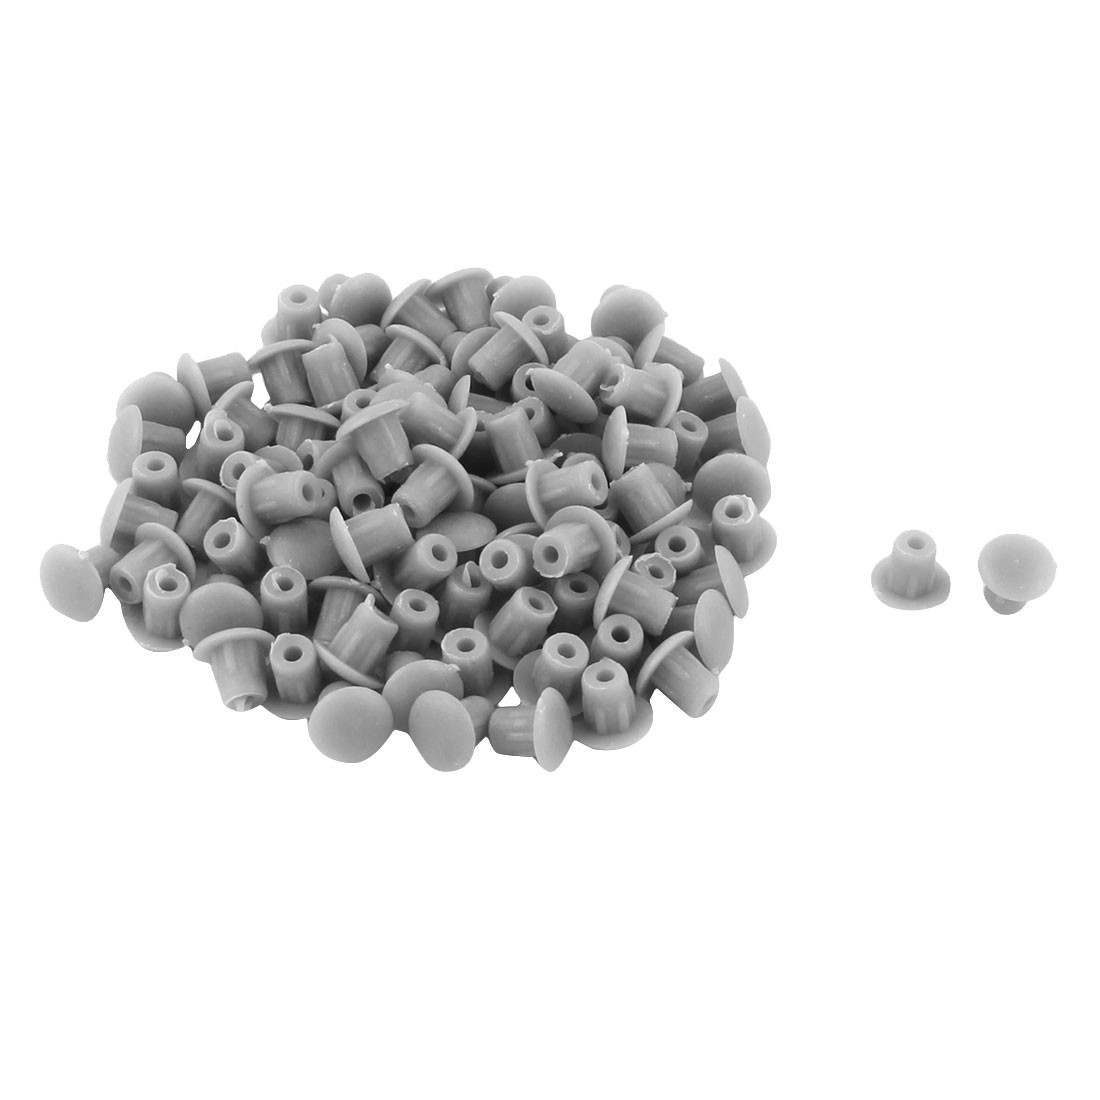 Furniture Table Chair Pipe End Hole Drilling Cover Plugs Insert Gray 5mm 100pcs